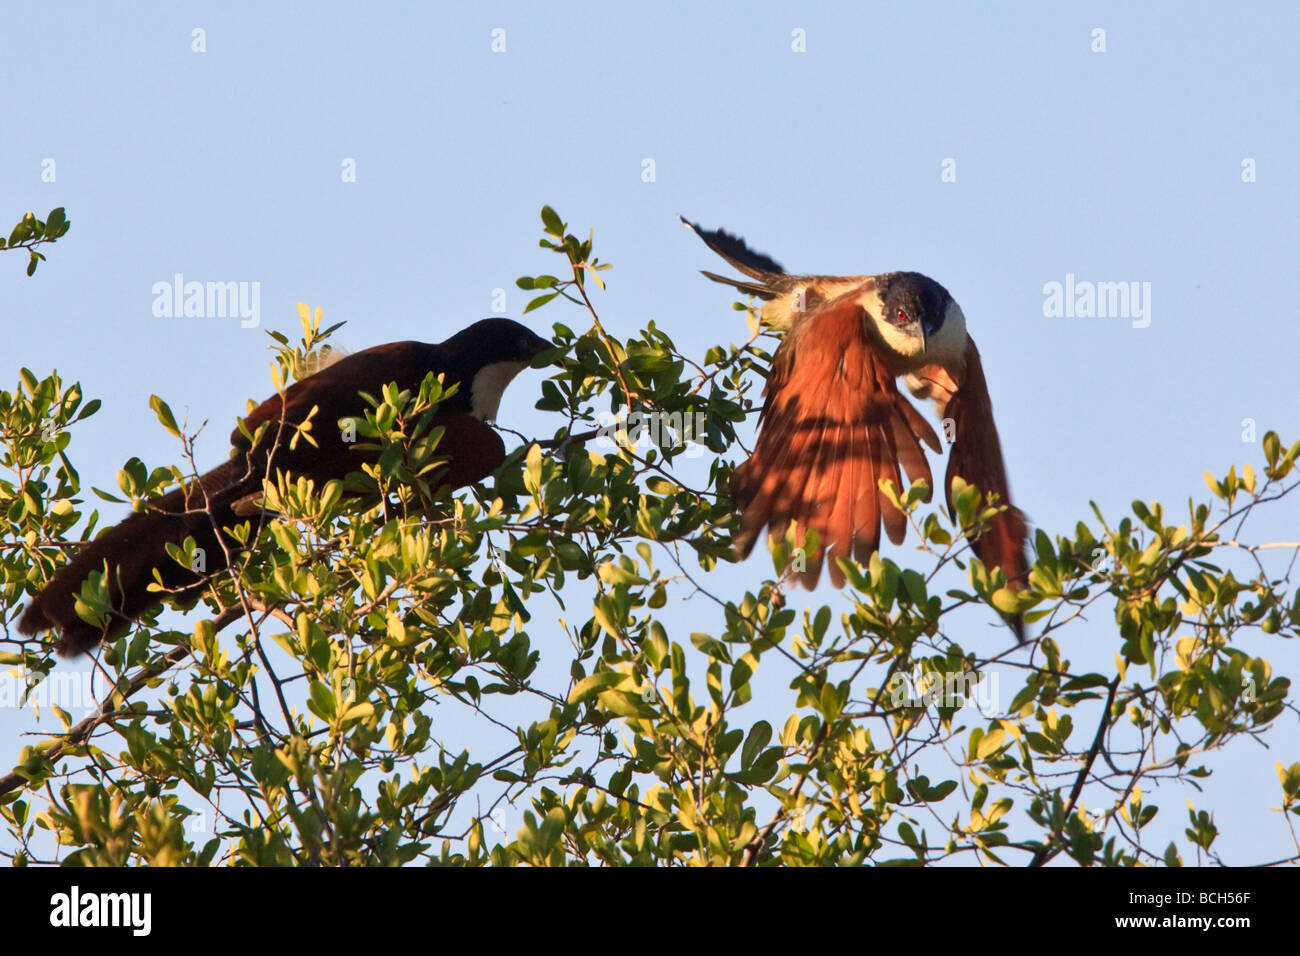 Coppery-Tailed Coucal - Stock Image